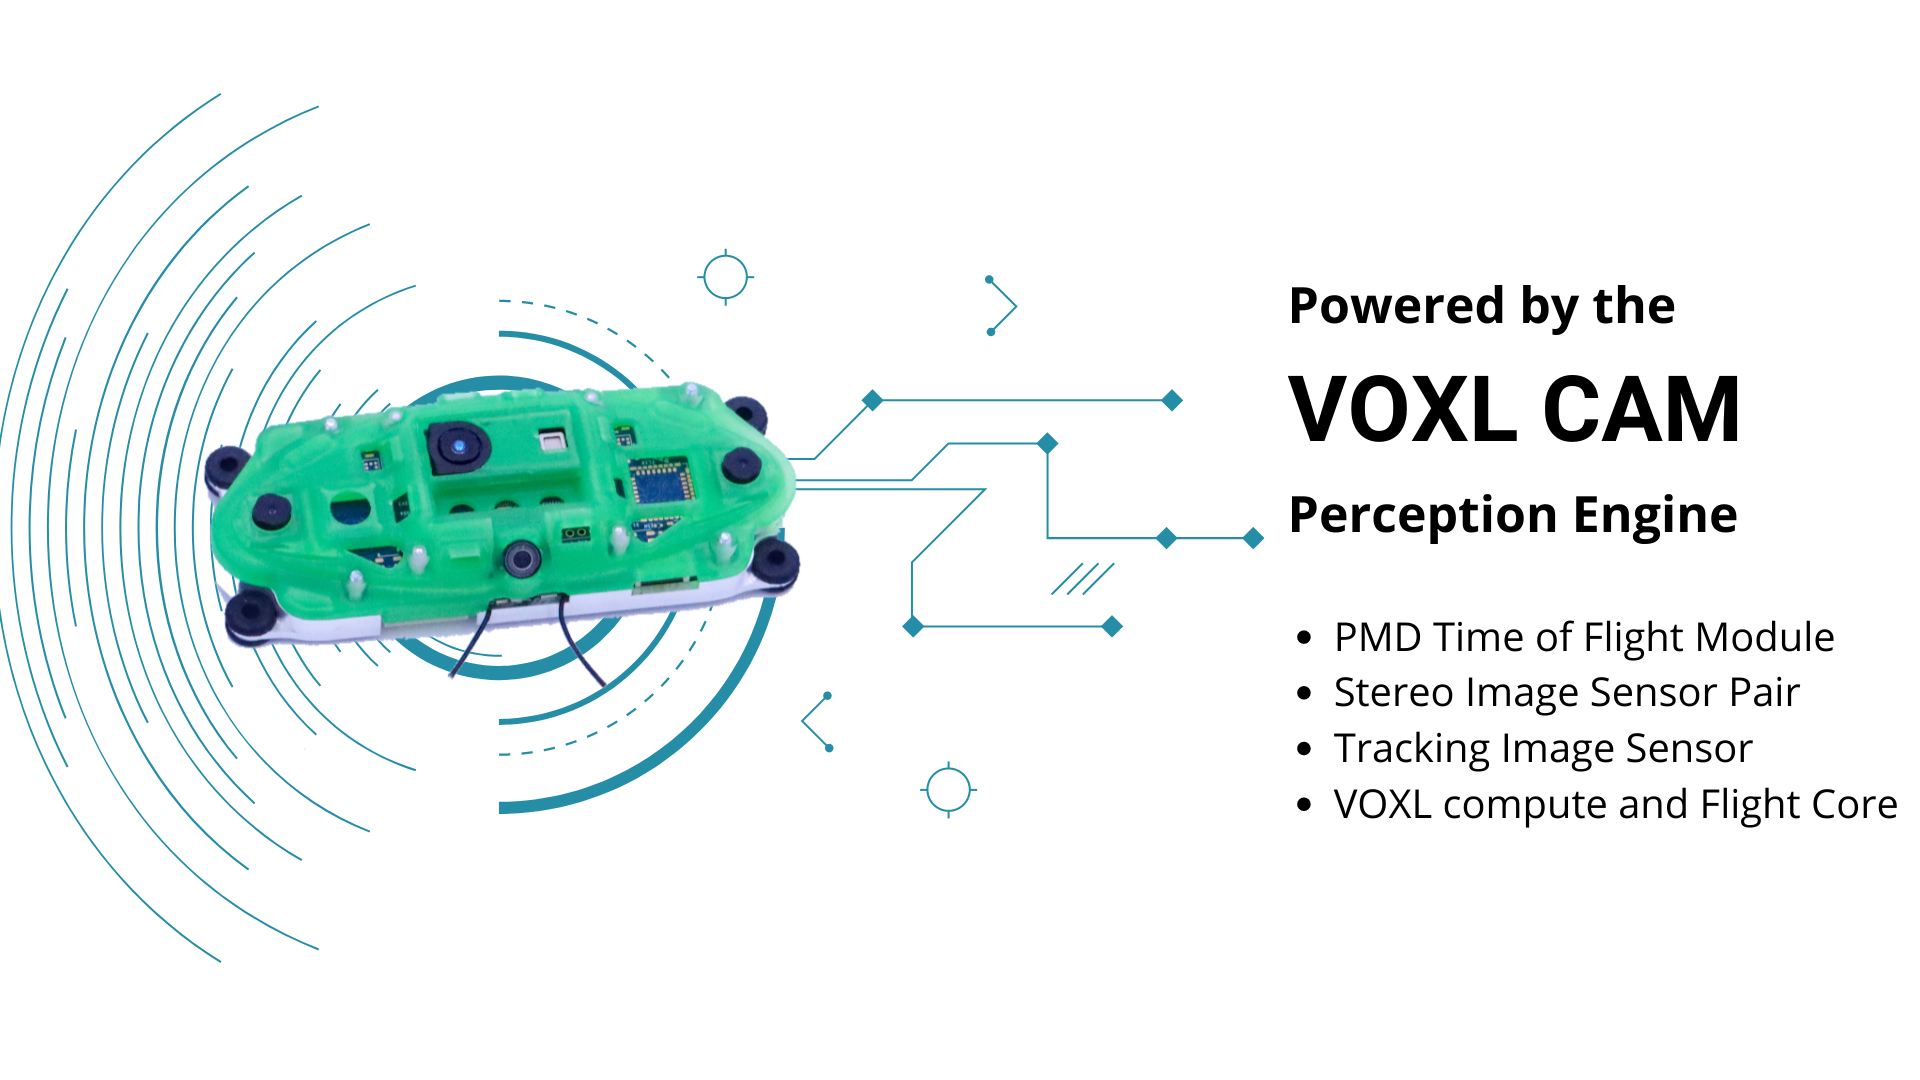 Powered by the VOXL CAM Perception Engine PMD Time of Flight (ToF) module for indoor depth mapping LiDAR-like data in the forward direction 224 x 171 (38k) px  FOV (H x V) 117° x 117° (near field 100° x 80°) Stereo Image Sensor pair for outdoor depth mapping Tracking Image Sensor for Visual Inertial Odometry localization